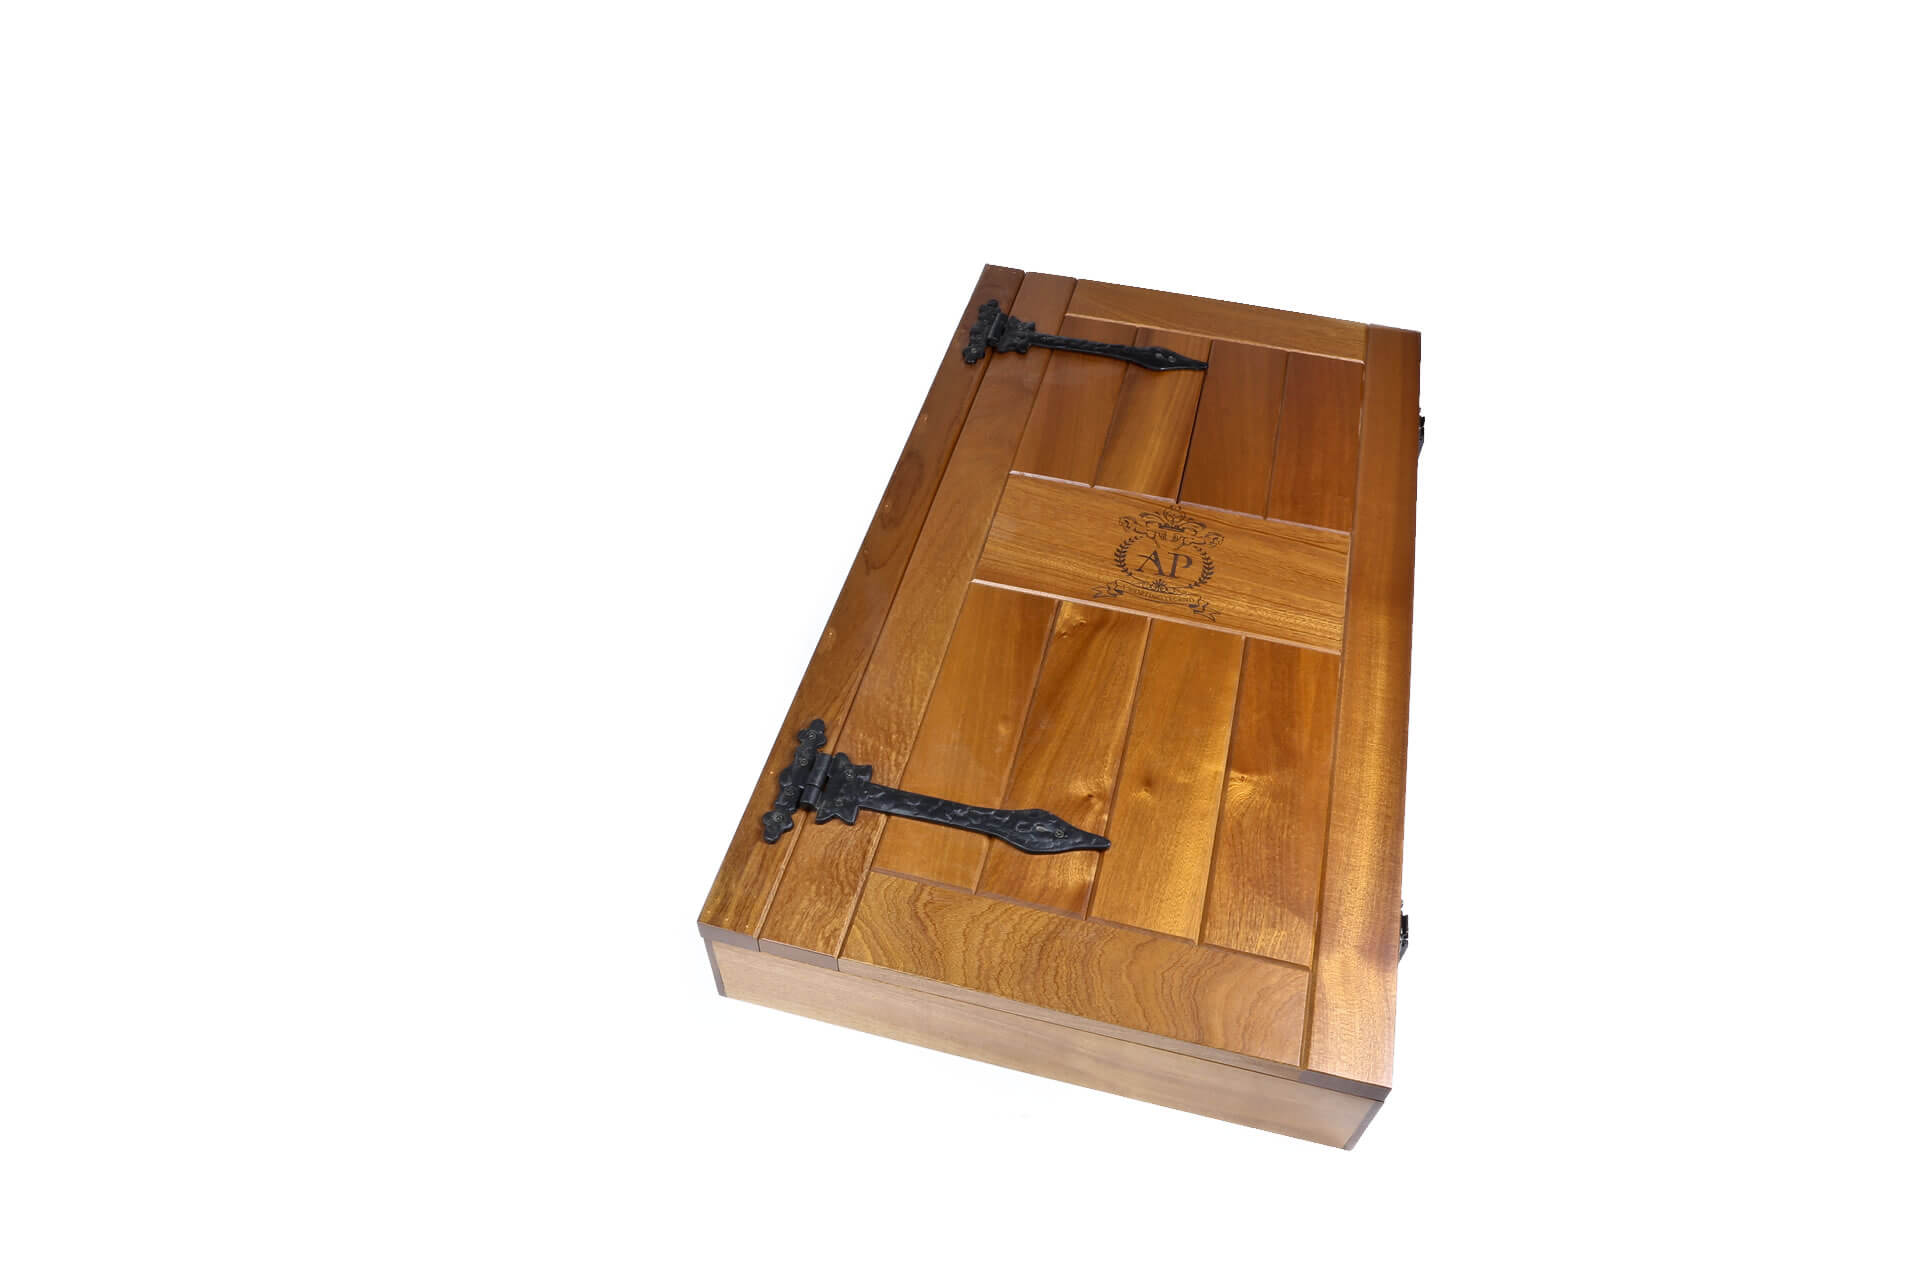 bespoke wooden display case sports promotional product closed